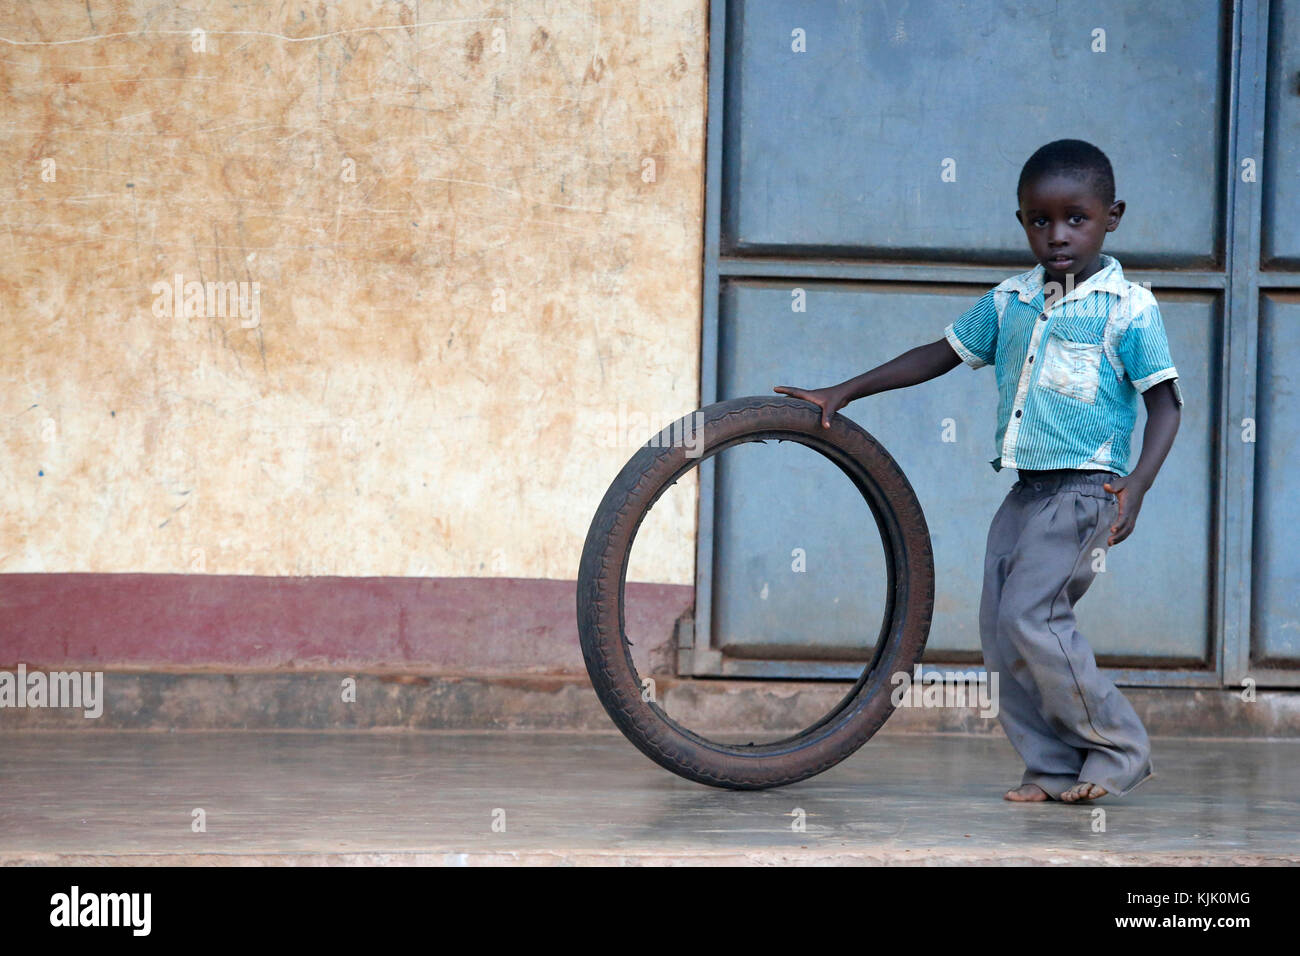 Ugandan child playing with a tyre. Uganda - Stock Image